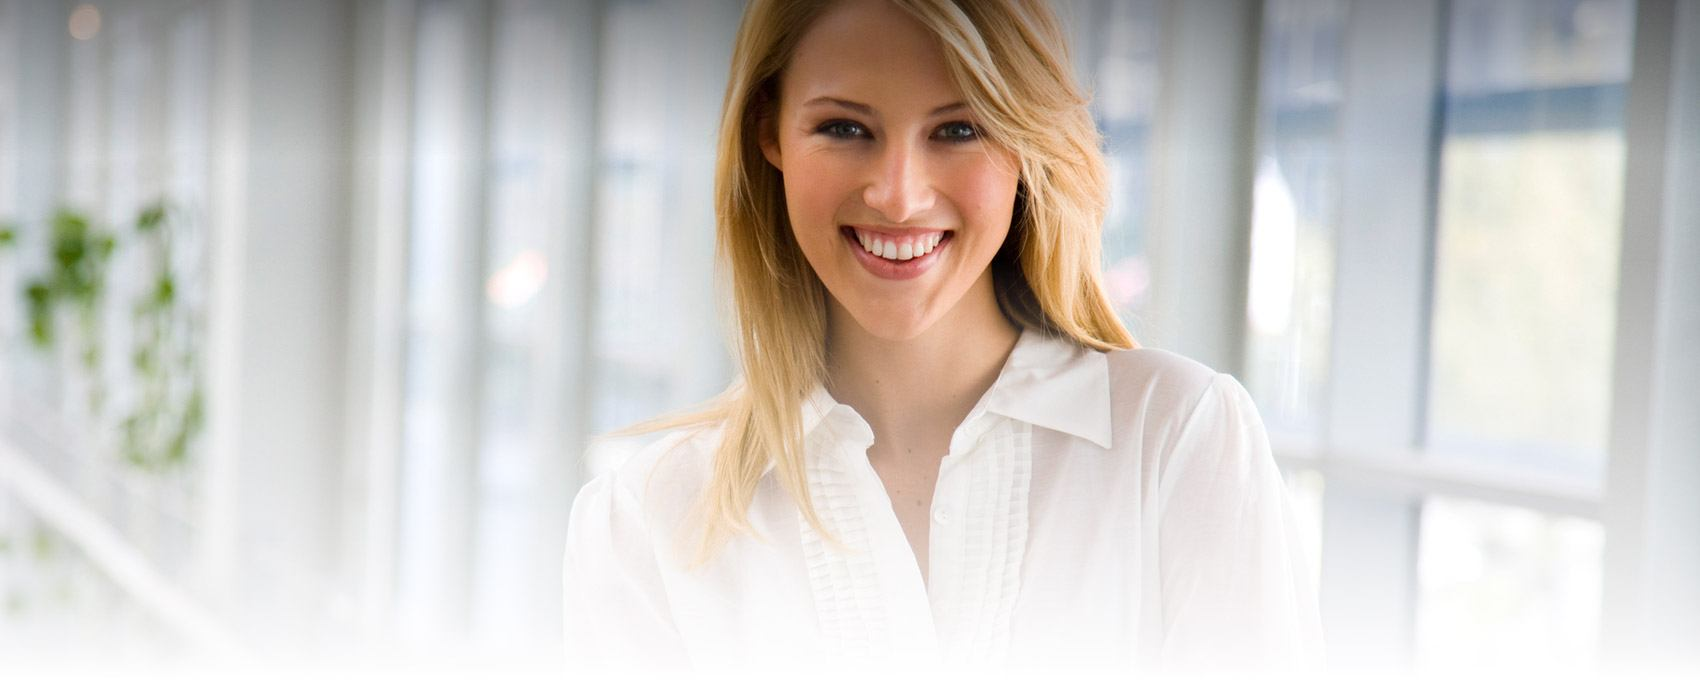 Contact - Shadowridge Dental Group Family and Cosmetic Dentistry